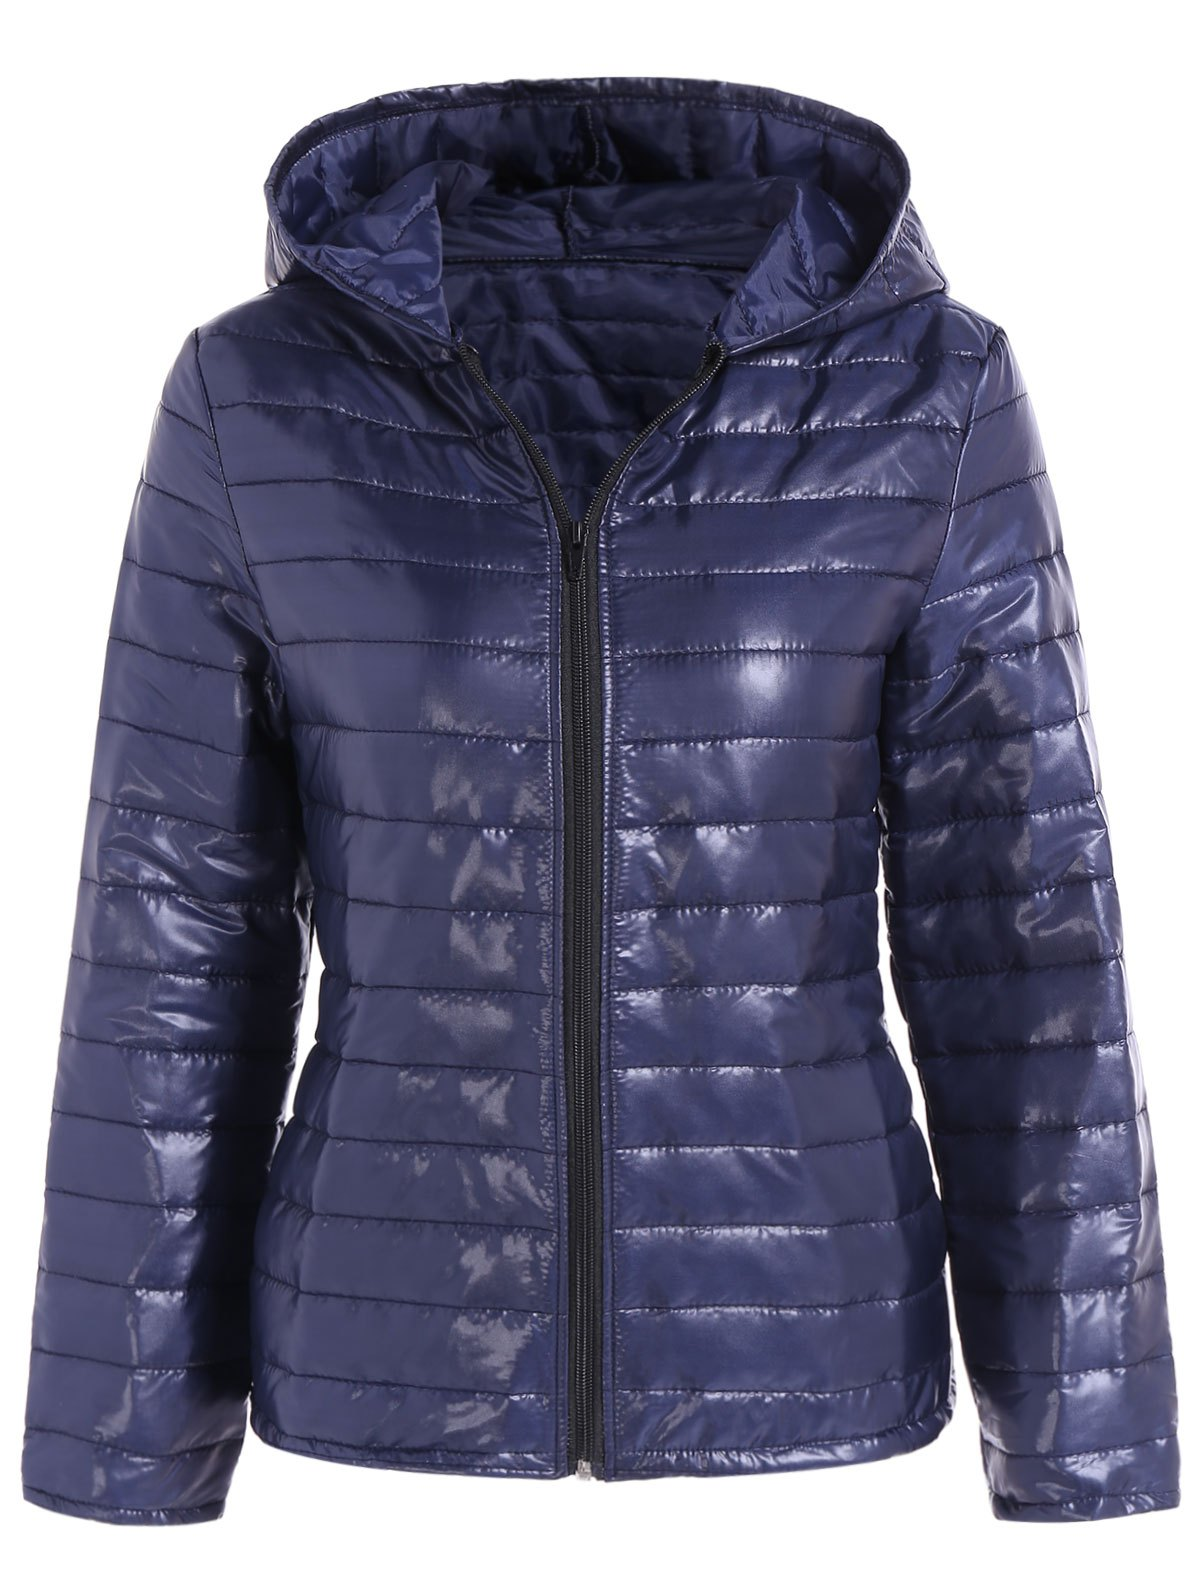 Slim Quilted Winter Jacket with HoodWOMEN<br><br>Size: L; Color: DEEP BLUE; Clothes Type: Padded; Material: Cotton Blends,Polyester; Type: Slim; Shirt Length: Regular; Sleeve Length: Full; Collar: Hooded; Closure Type: Zipper; Pattern Type: Solid; Embellishment: Pockets; Style: Casual; Season: Fall,Spring,Winter; Weight: 0.328kg; Package Contents: 1 x Jacket;